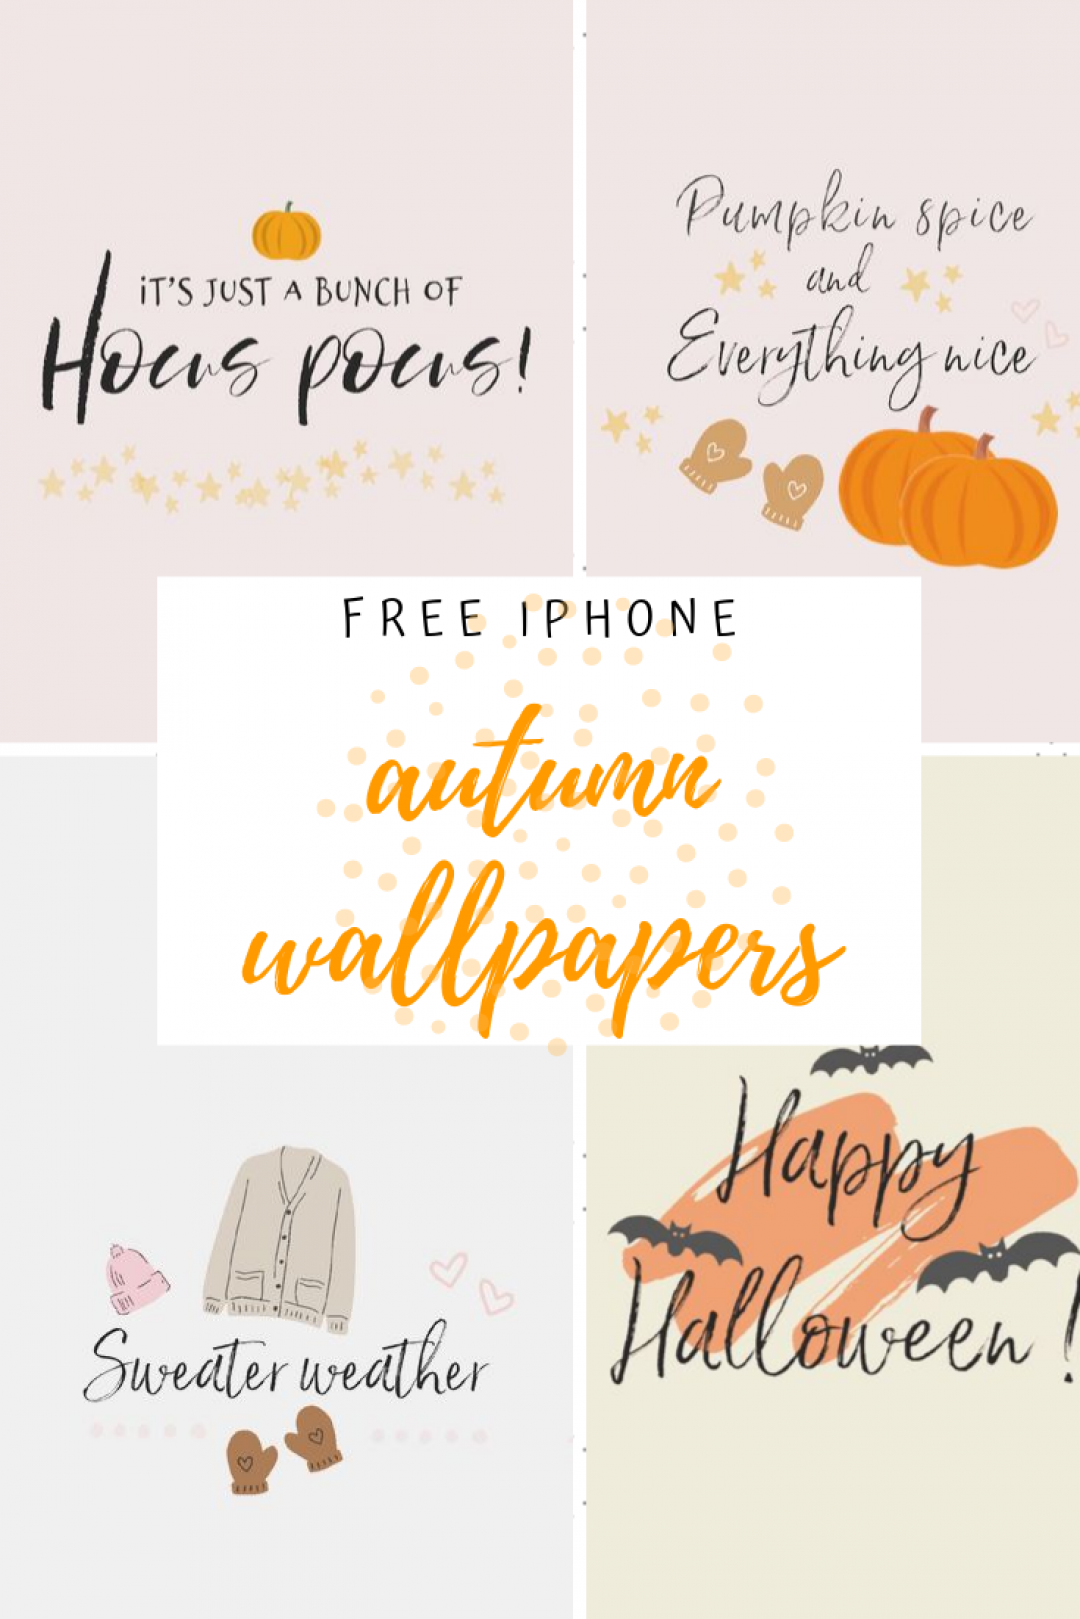 55 Hello Autumn Aesthetic Hd Wallpapers Desktop Background Android Iphone 1080p 4k 1080x1619 2020